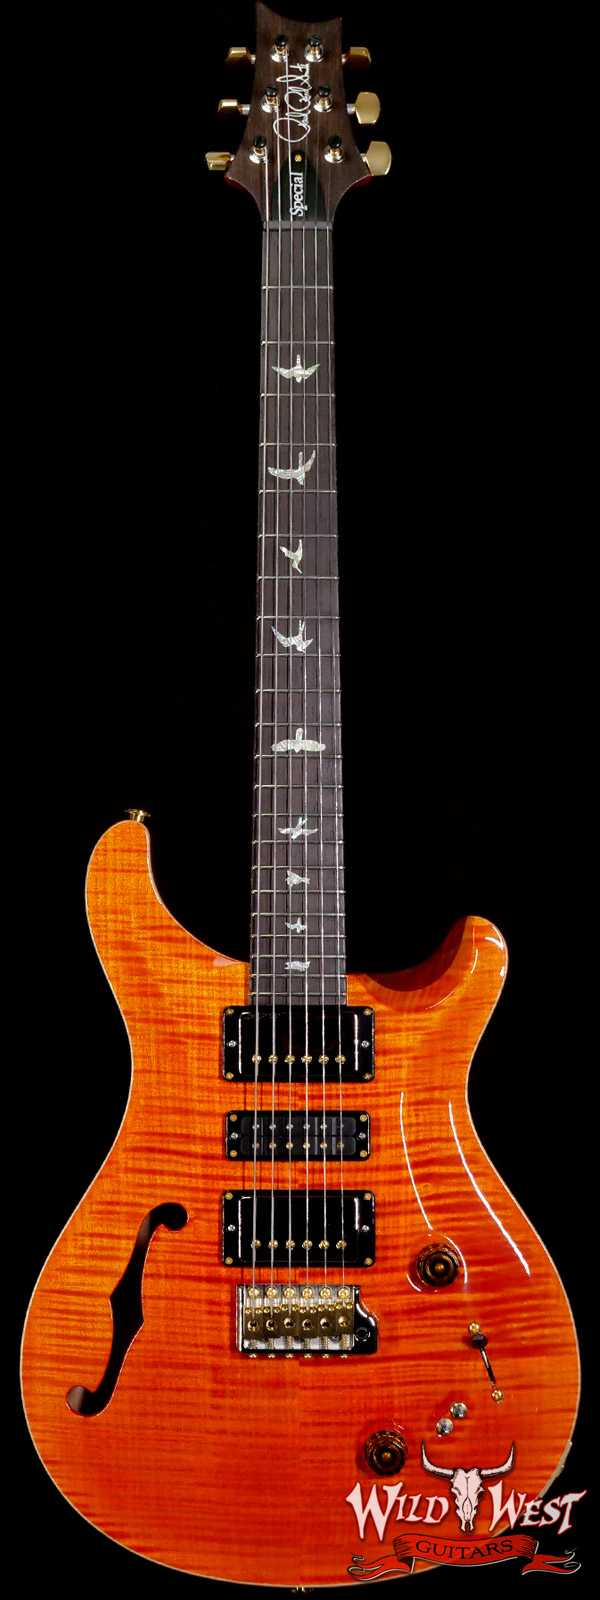 PRS Wood Library 10 Top Special 22 Semi-Hollow Flame Maple Stained Neck Brazilian Rosewood Fingerboard Orange